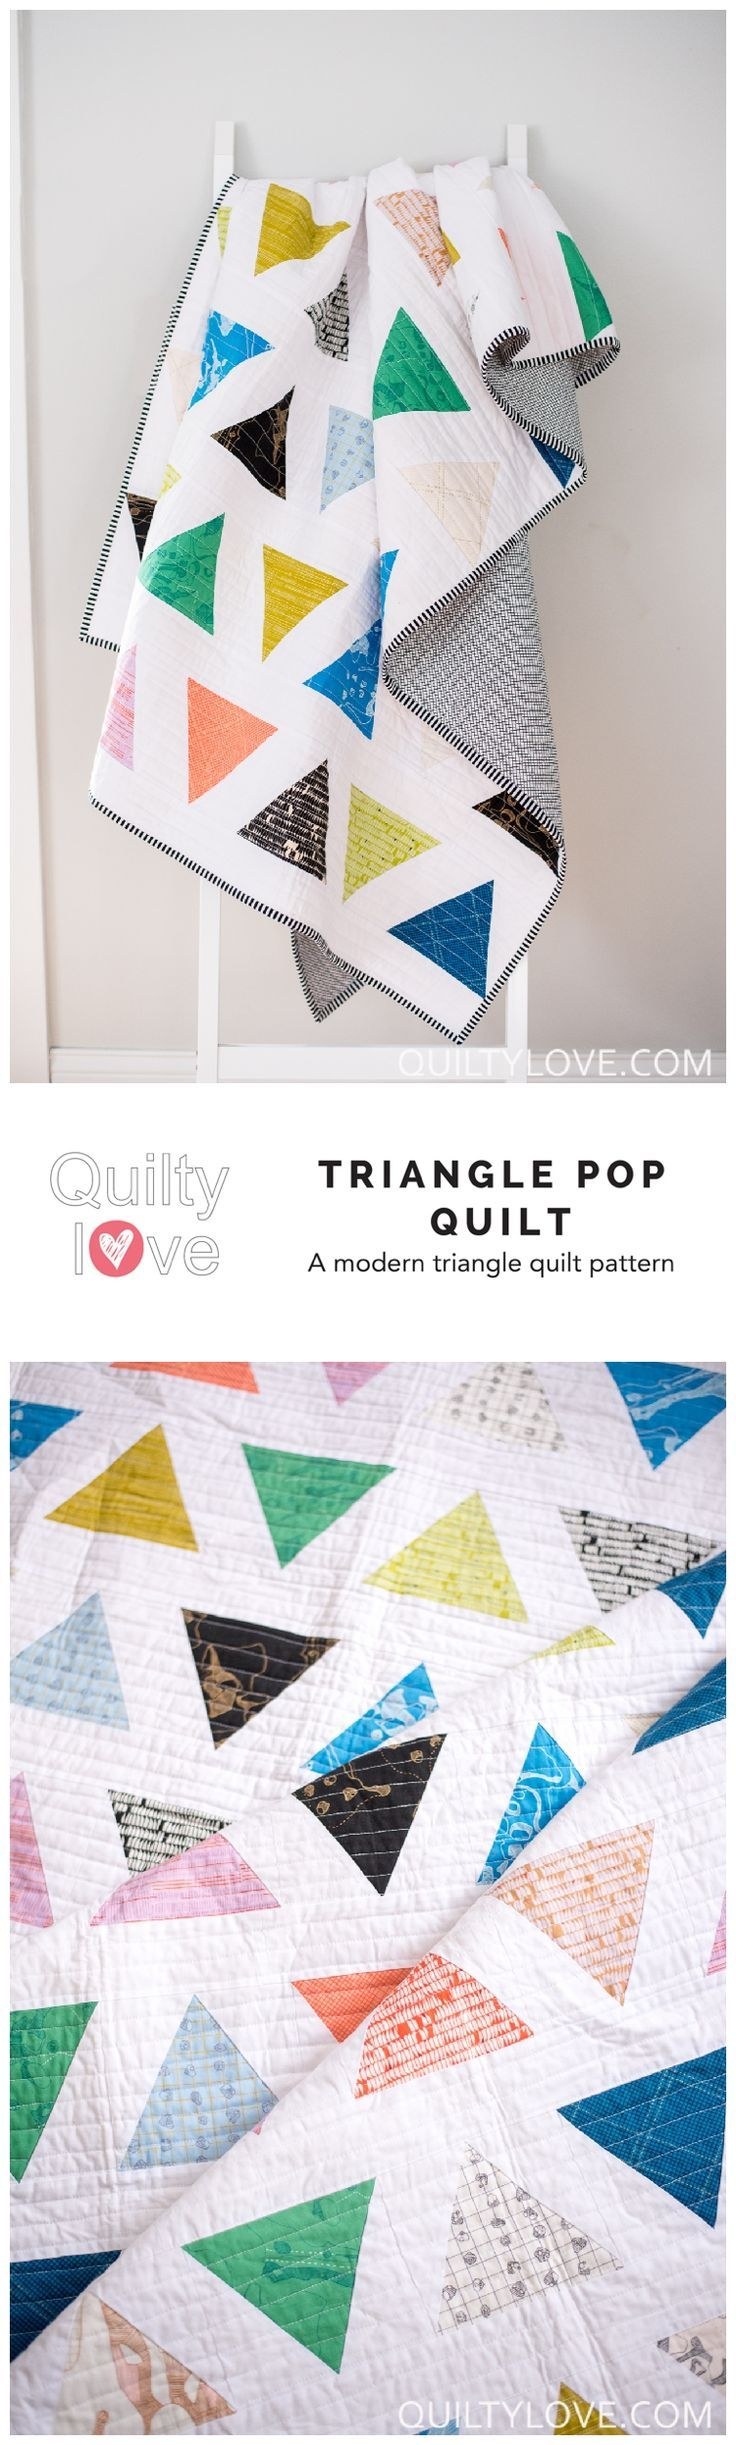 Triangle Pop quilt pattern by Emily of Quiltylove.com.  Modern triangle quilt.  Easy quilt pattern. #quilting #quiltylove